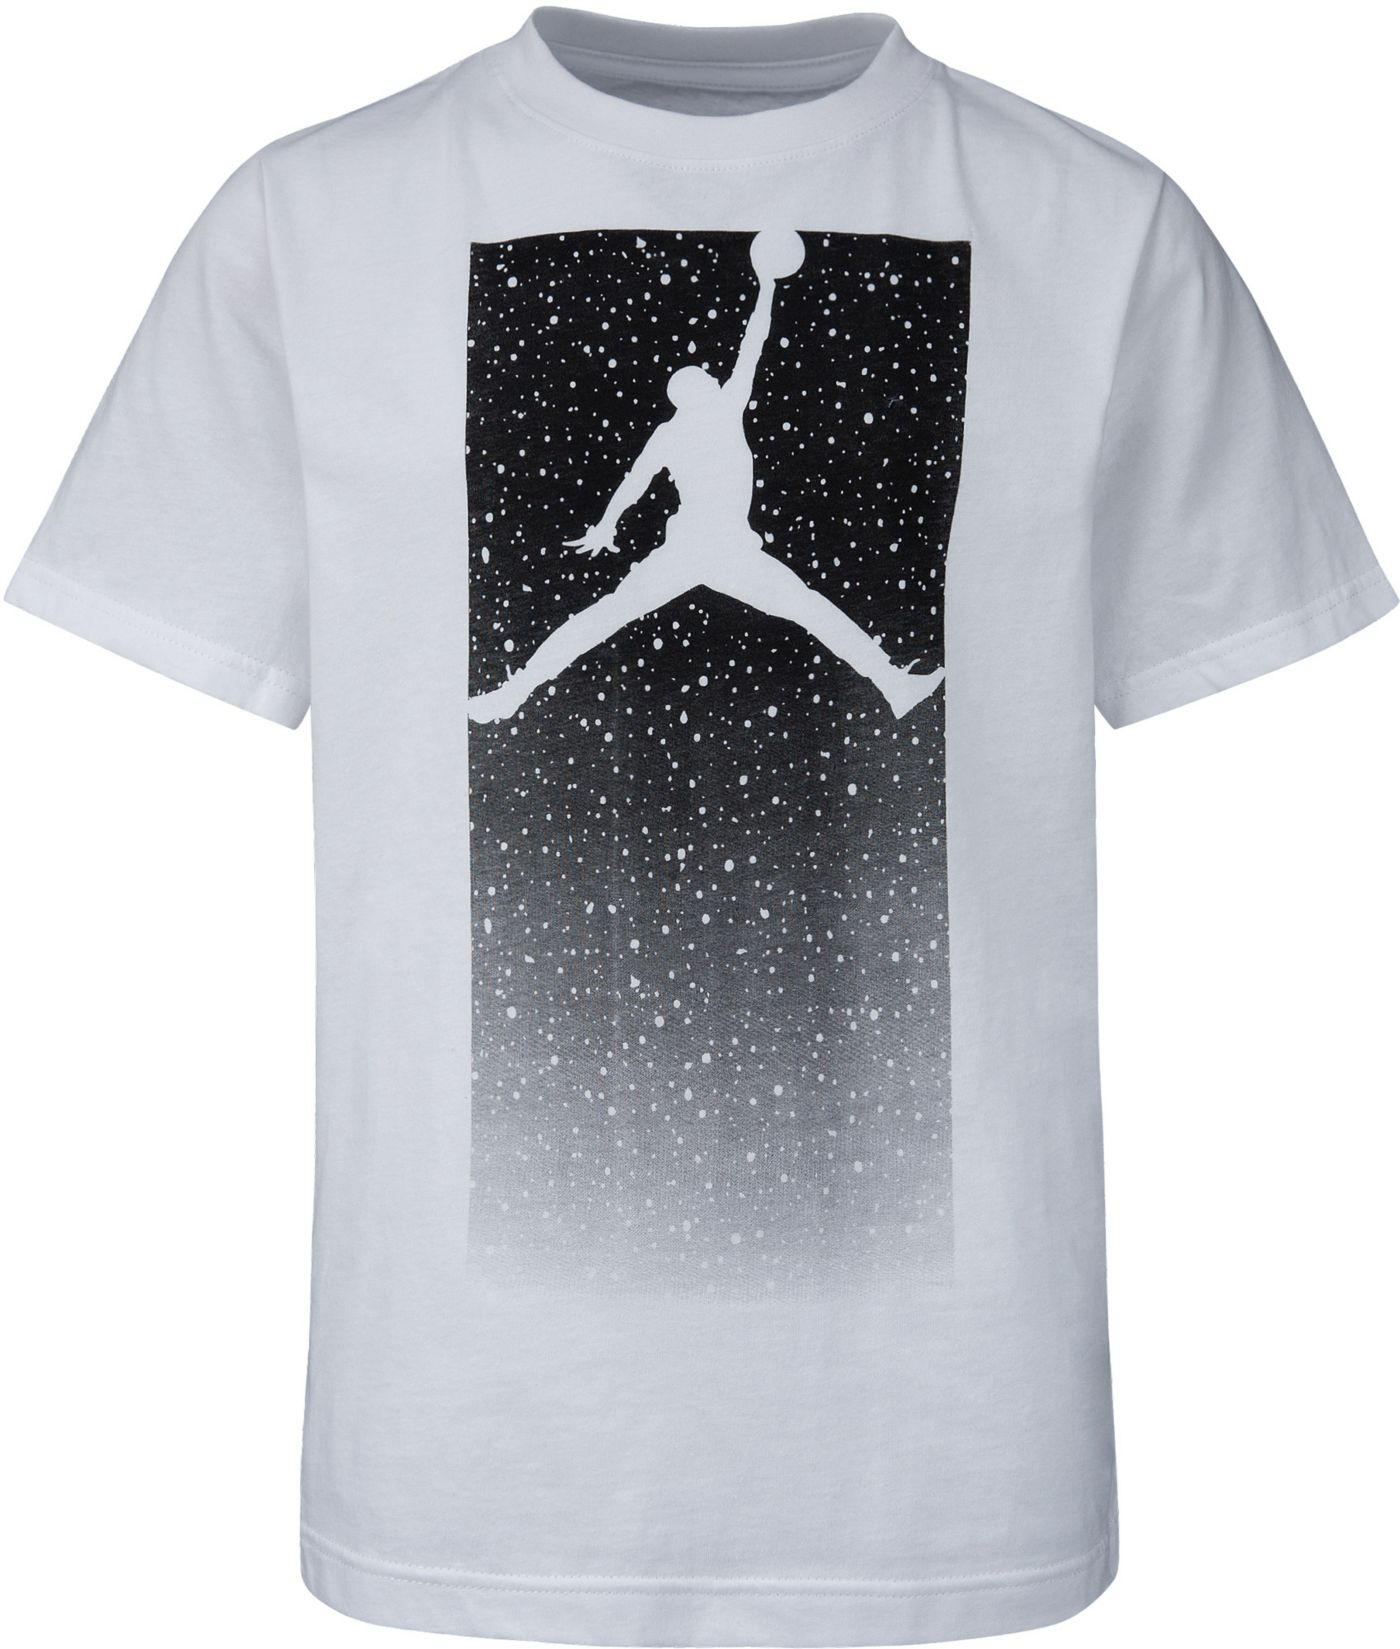 Jordan Boys' Glow in The Dark Graphic T-Shirt